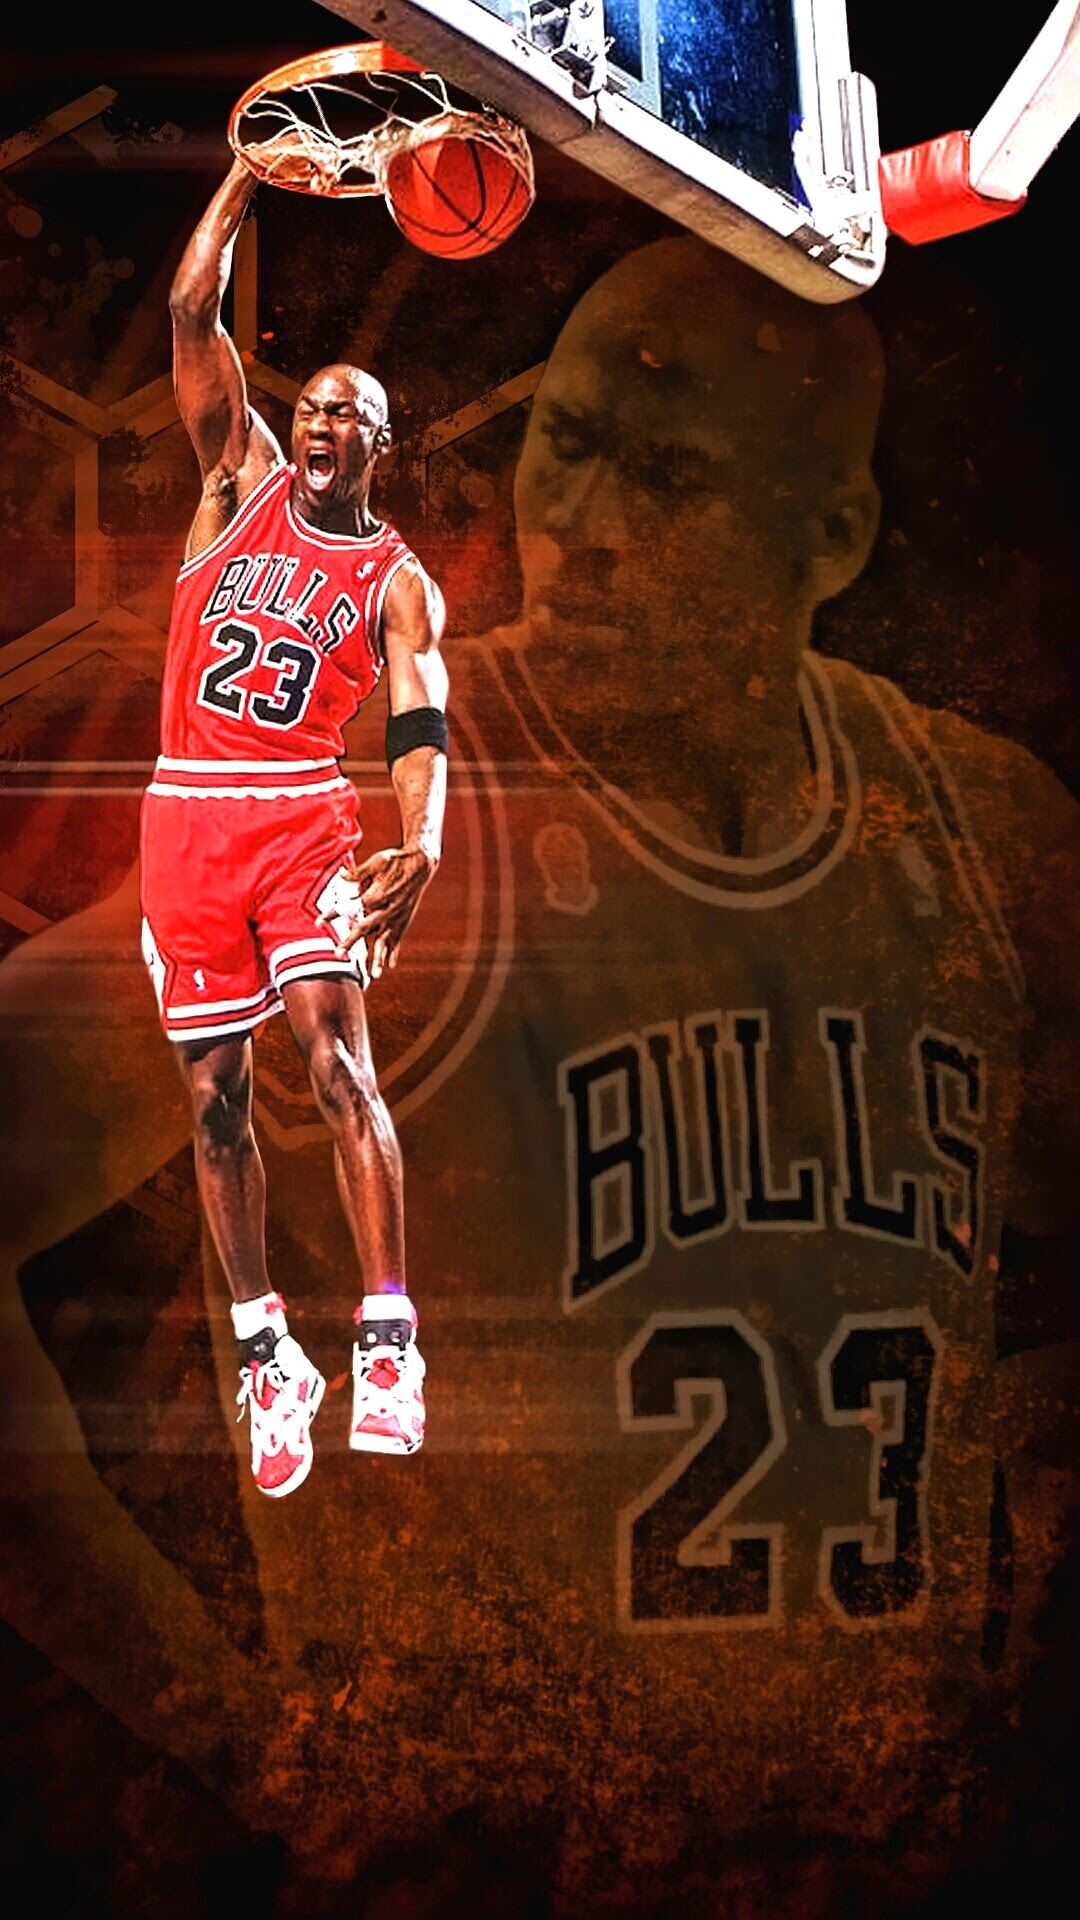 Cartoon Michael Jordan Iphone Background In 2020 Michael Jordan Pictures Michael Jordan Micheal Jordan